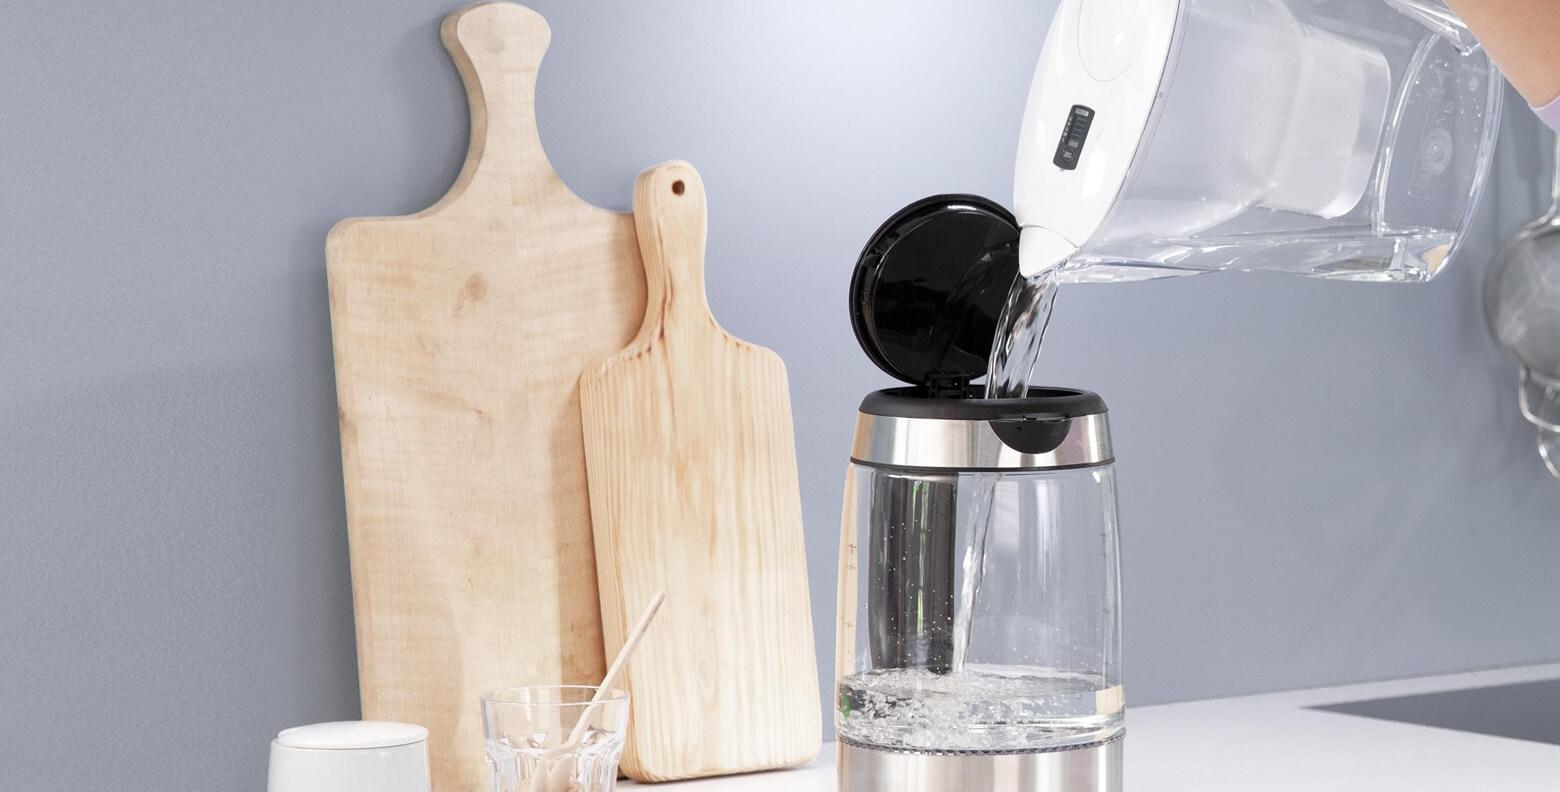 Water filter jug and cooker